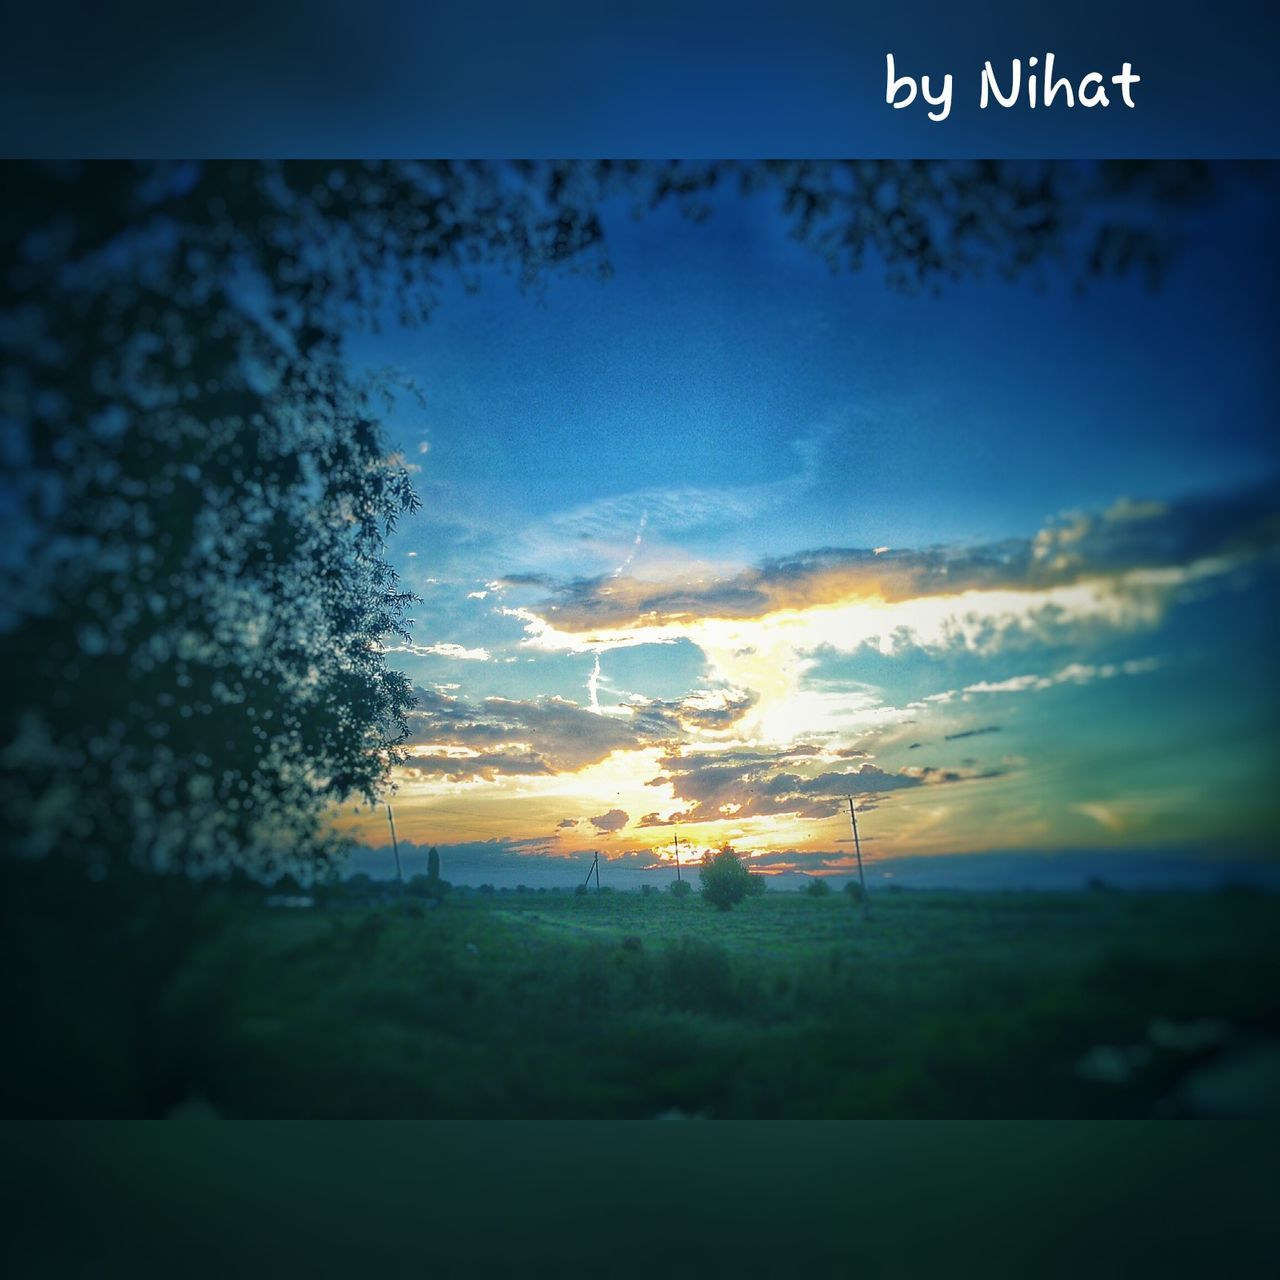 sky, cloud - sky, no people, sunset, nature, scenics, beauty in nature, communication, tree, outdoors, tranquility, blue, day, close-up